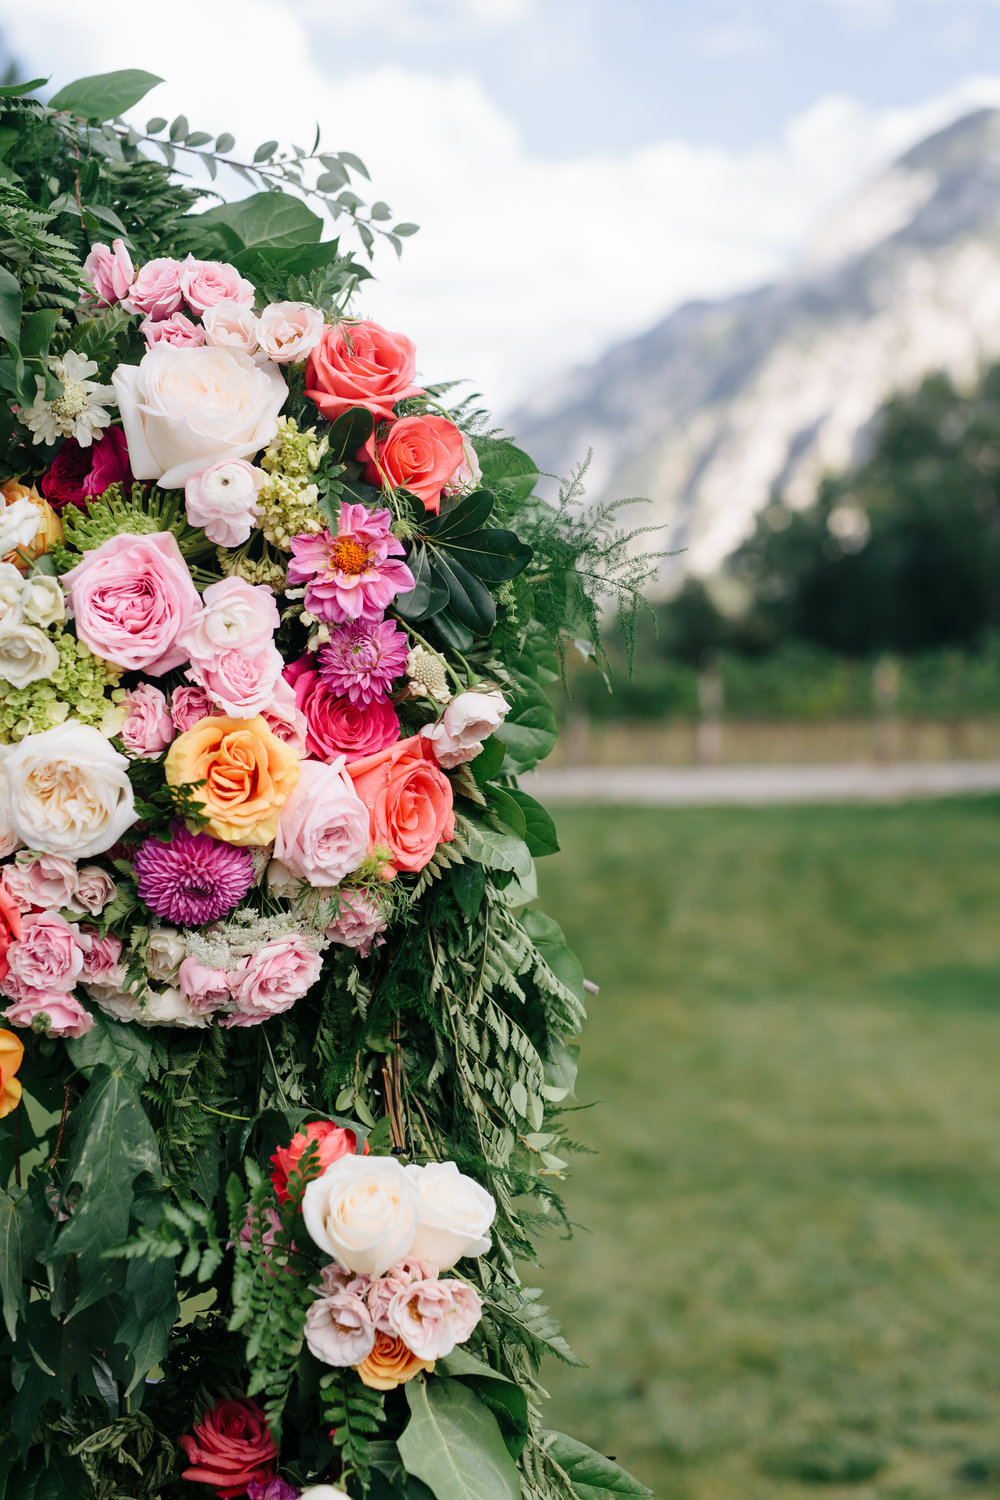 Romantic Wedding at La Caille | La Caille Wedding | Salt Lake City Wedding | Military Wedding | Michelle Leo Events | Utah Event Planner and Designer | Brushfire Photography